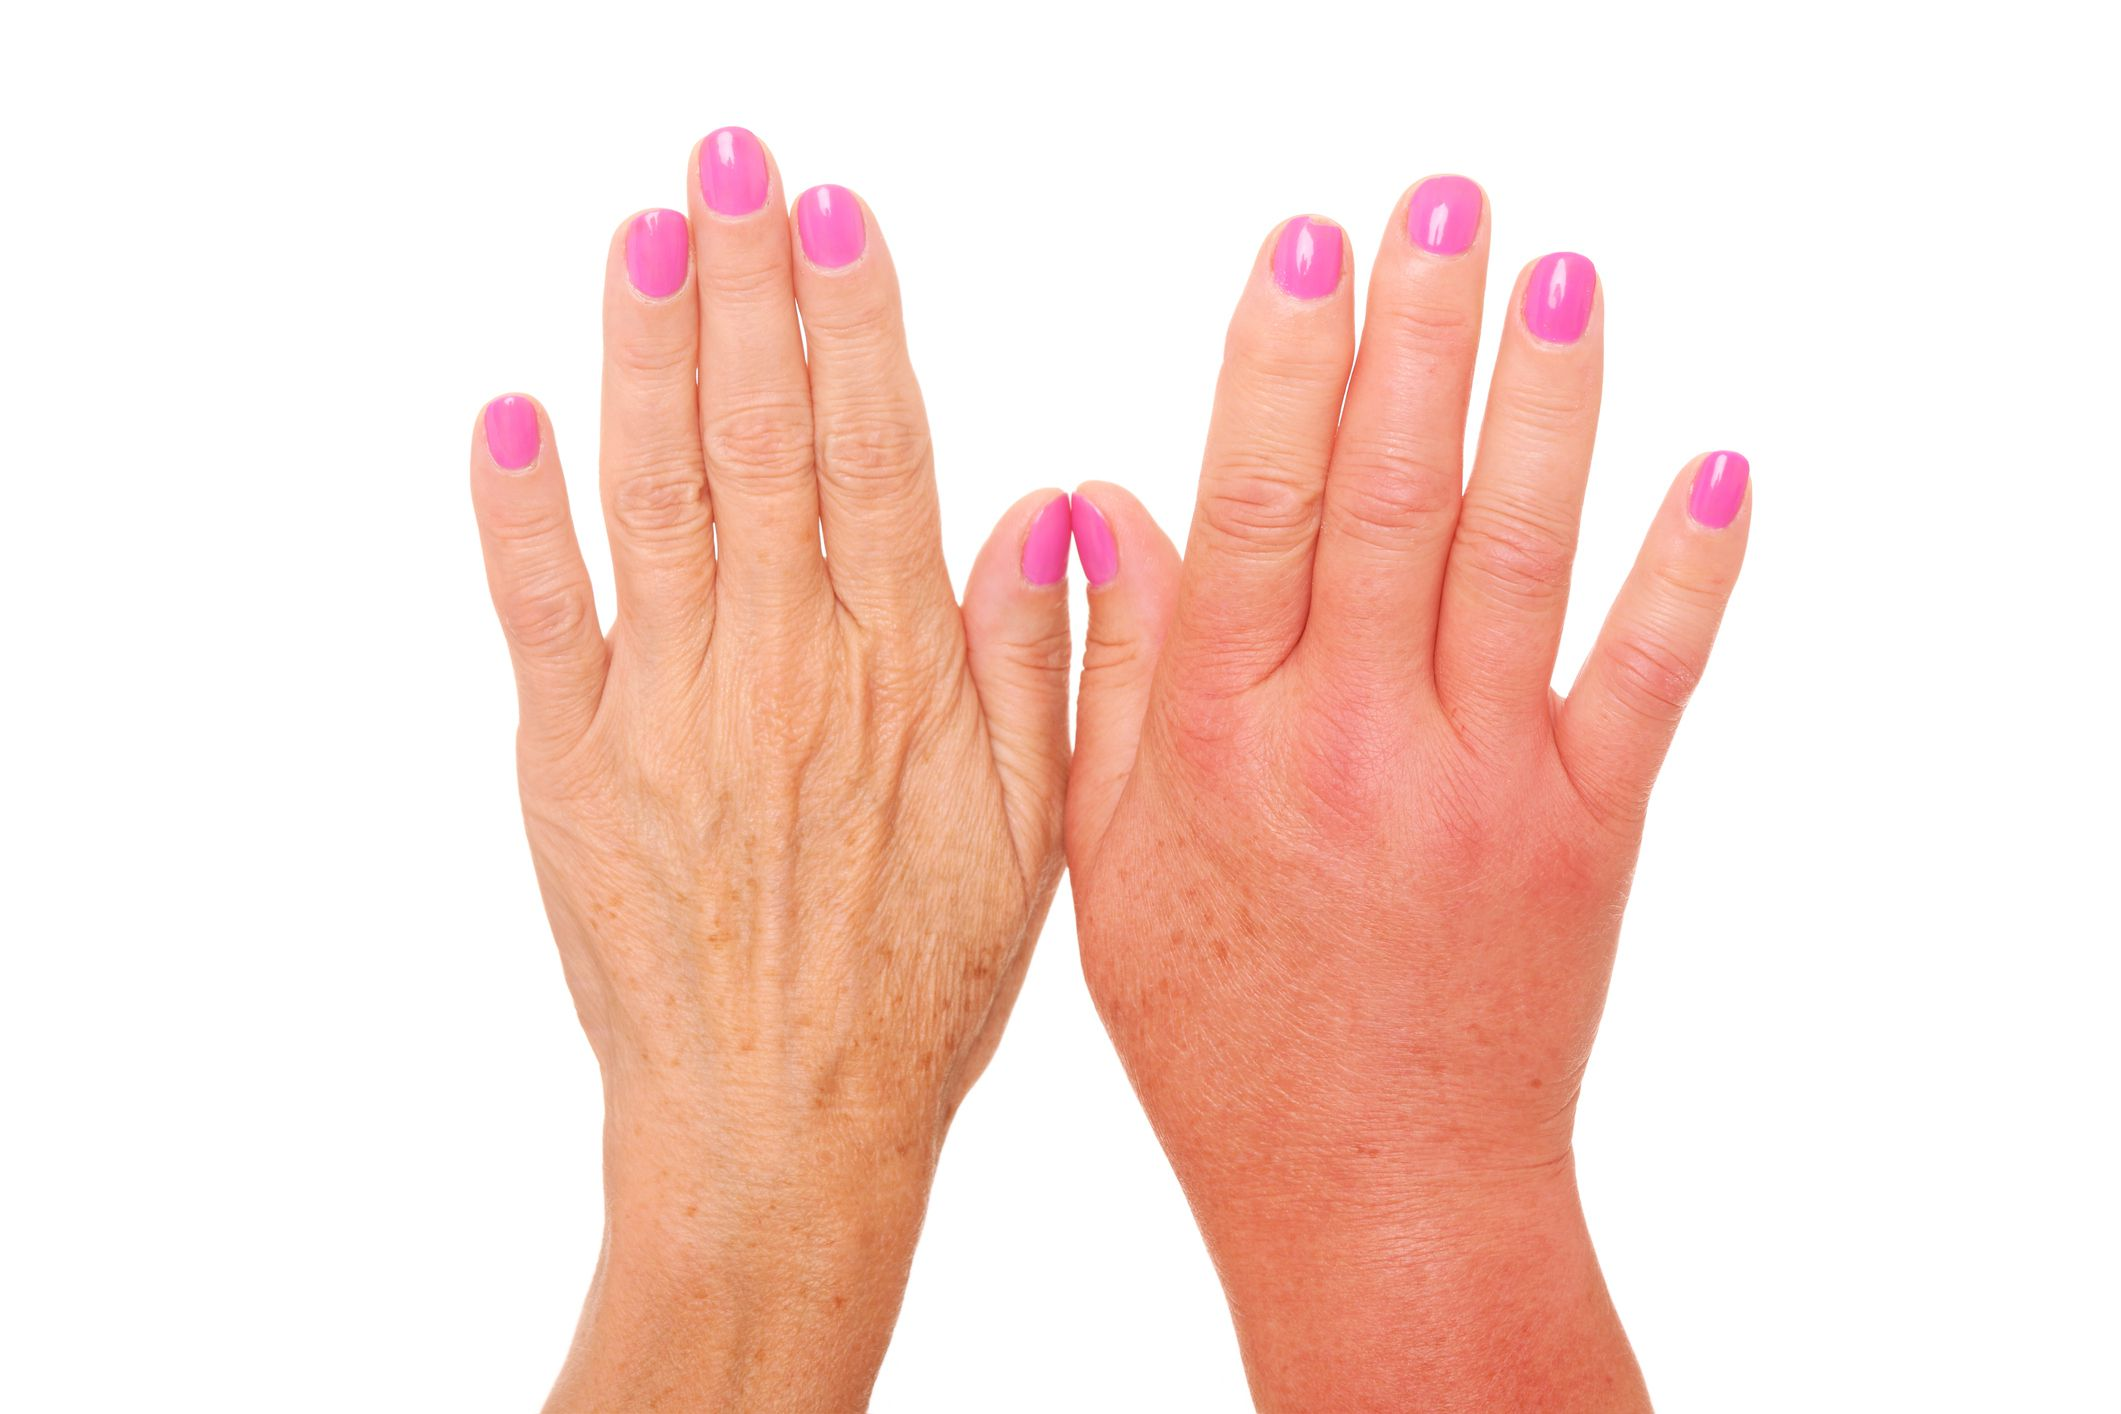 Psoriatic Arthritis Hand And Finger Symptoms